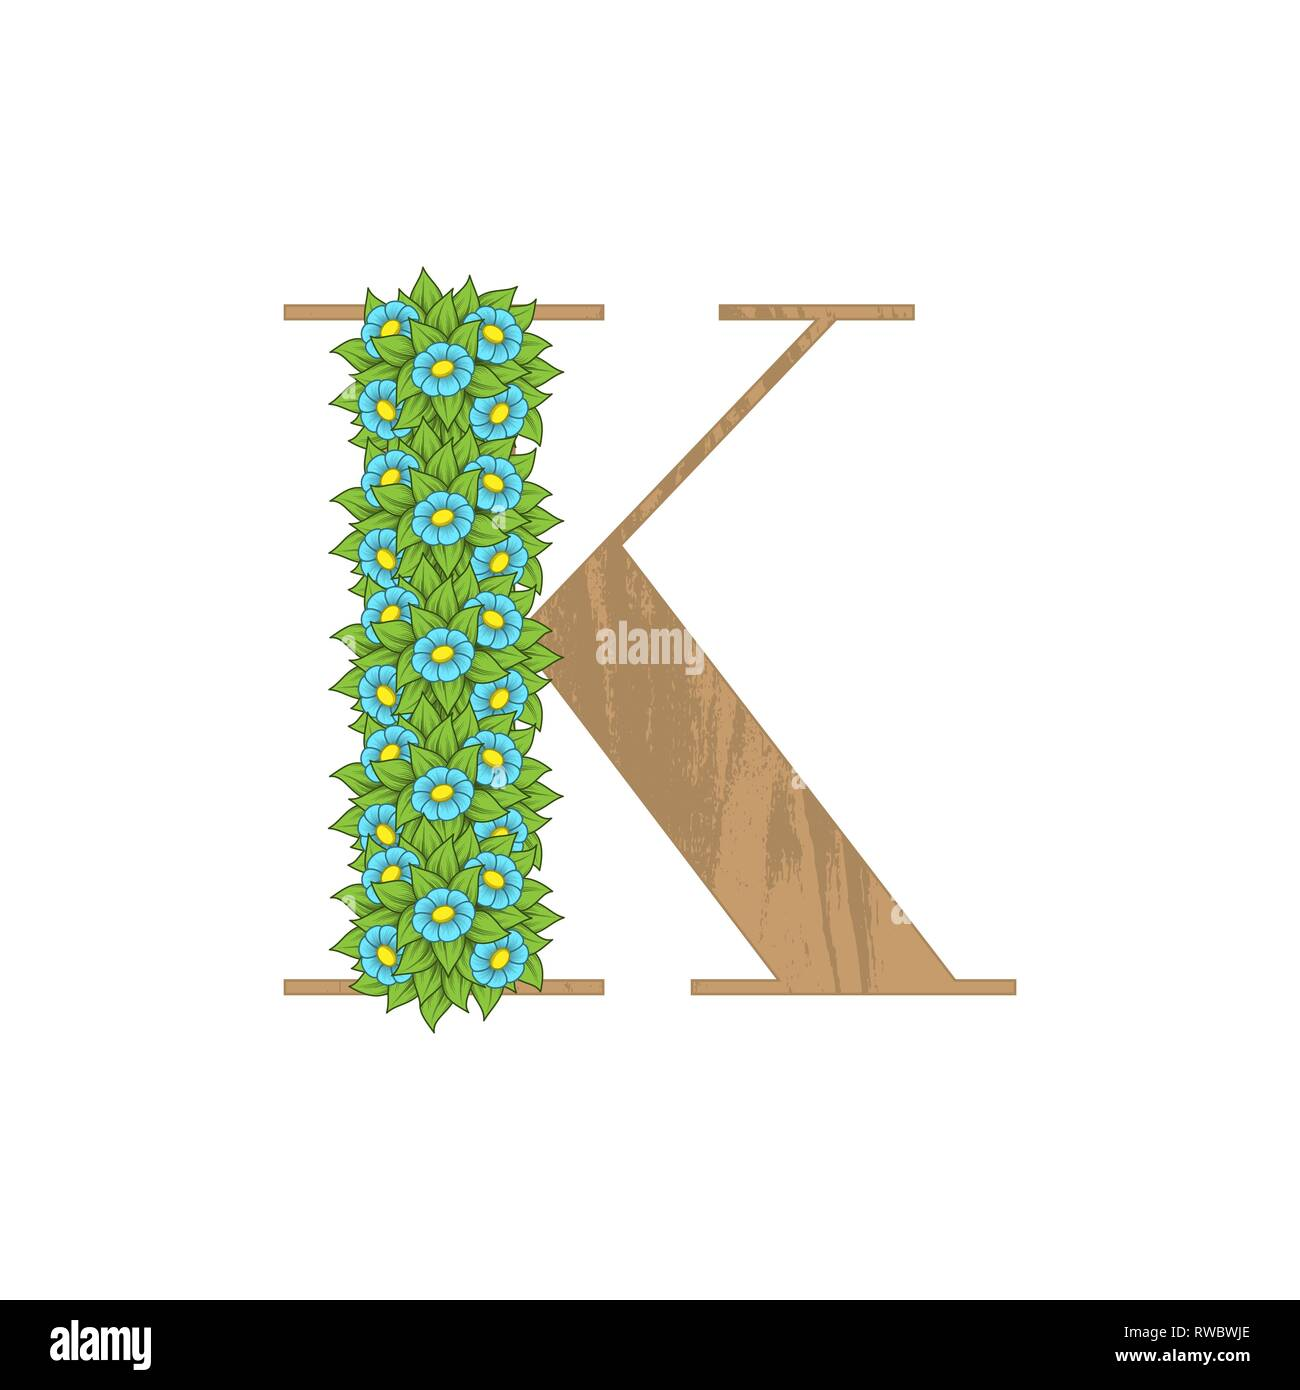 Letter K wooden texture with green leaves and flowers - Stock Image